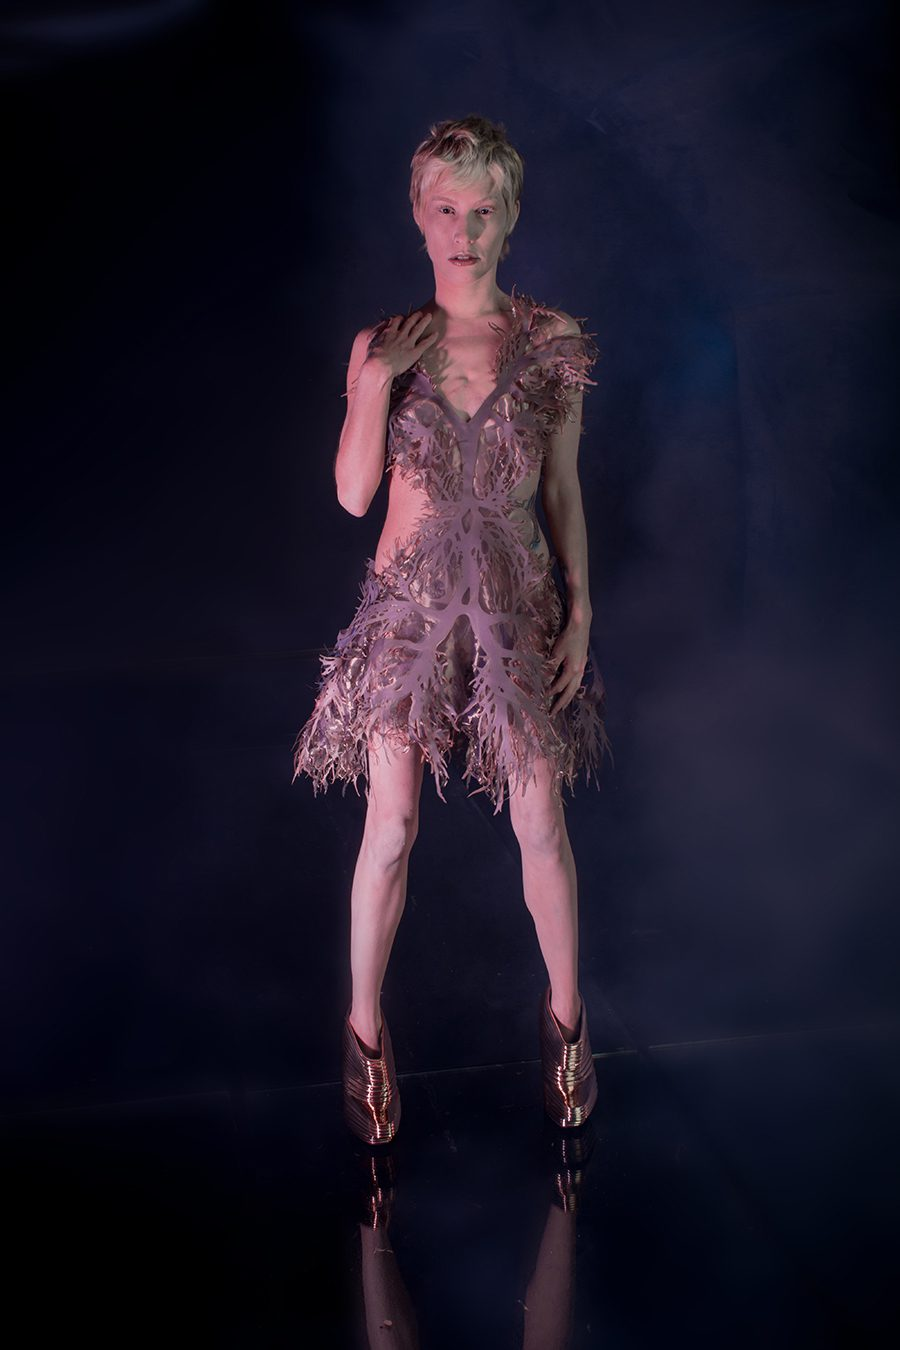 2017_5010-Artist-Designer-Amy-Karle-Model-Ashley-Koser-who-had-a-double-lung-transplant-wears-2nd-Chance-dress-based-on-lungs-from-Internal-Collection-by-Amy-Karle_Photographer-Christyl-O'Flaherty